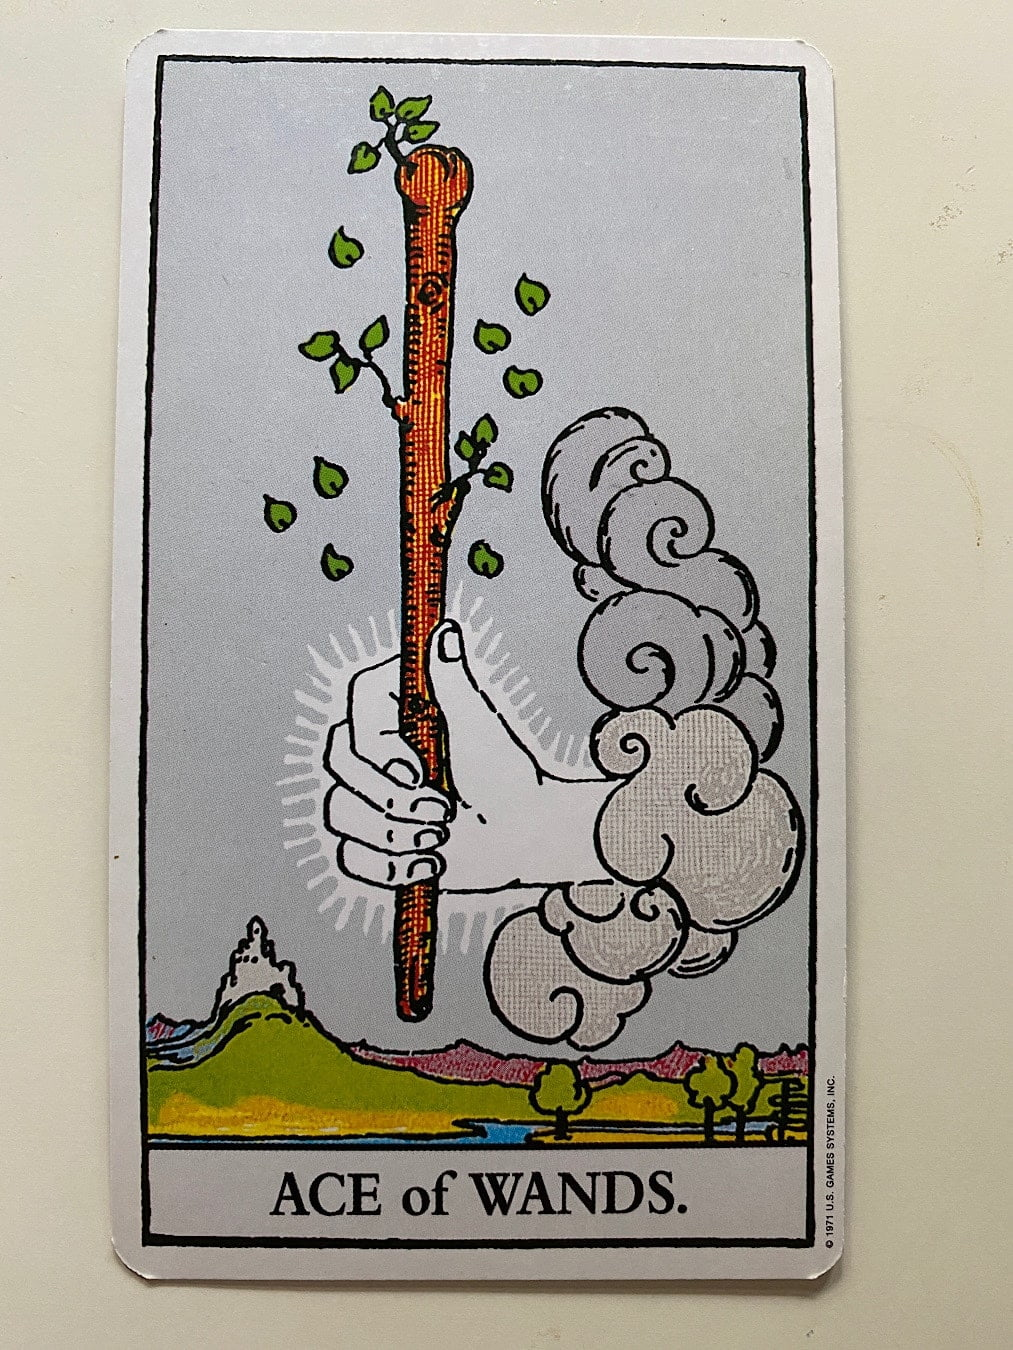 Ace of Wands rider-waite-smith